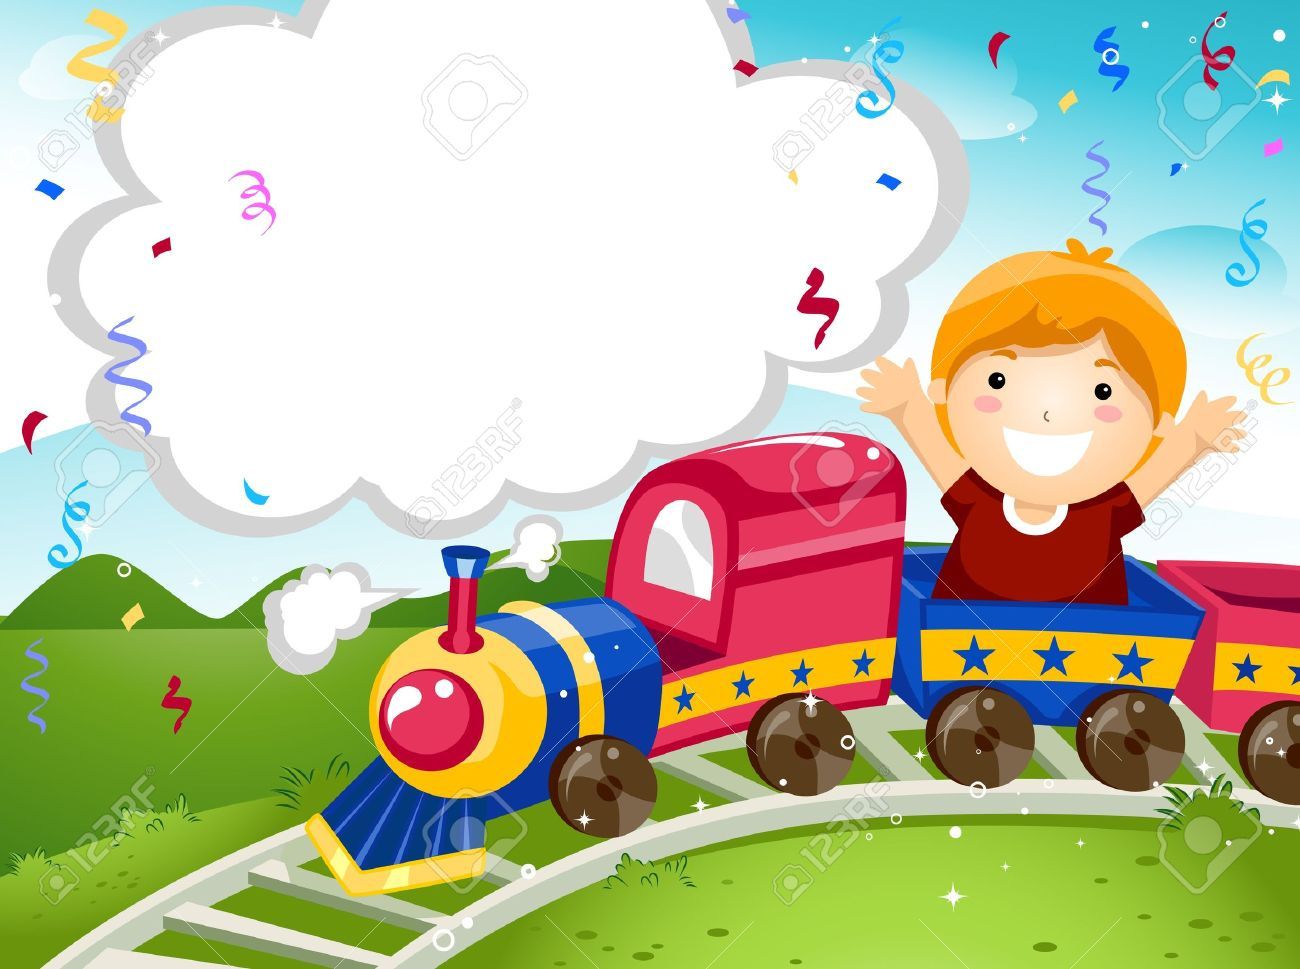 Party Invitation Featuring a Kid Riding on a Toy Train Stock Photo - 8427178